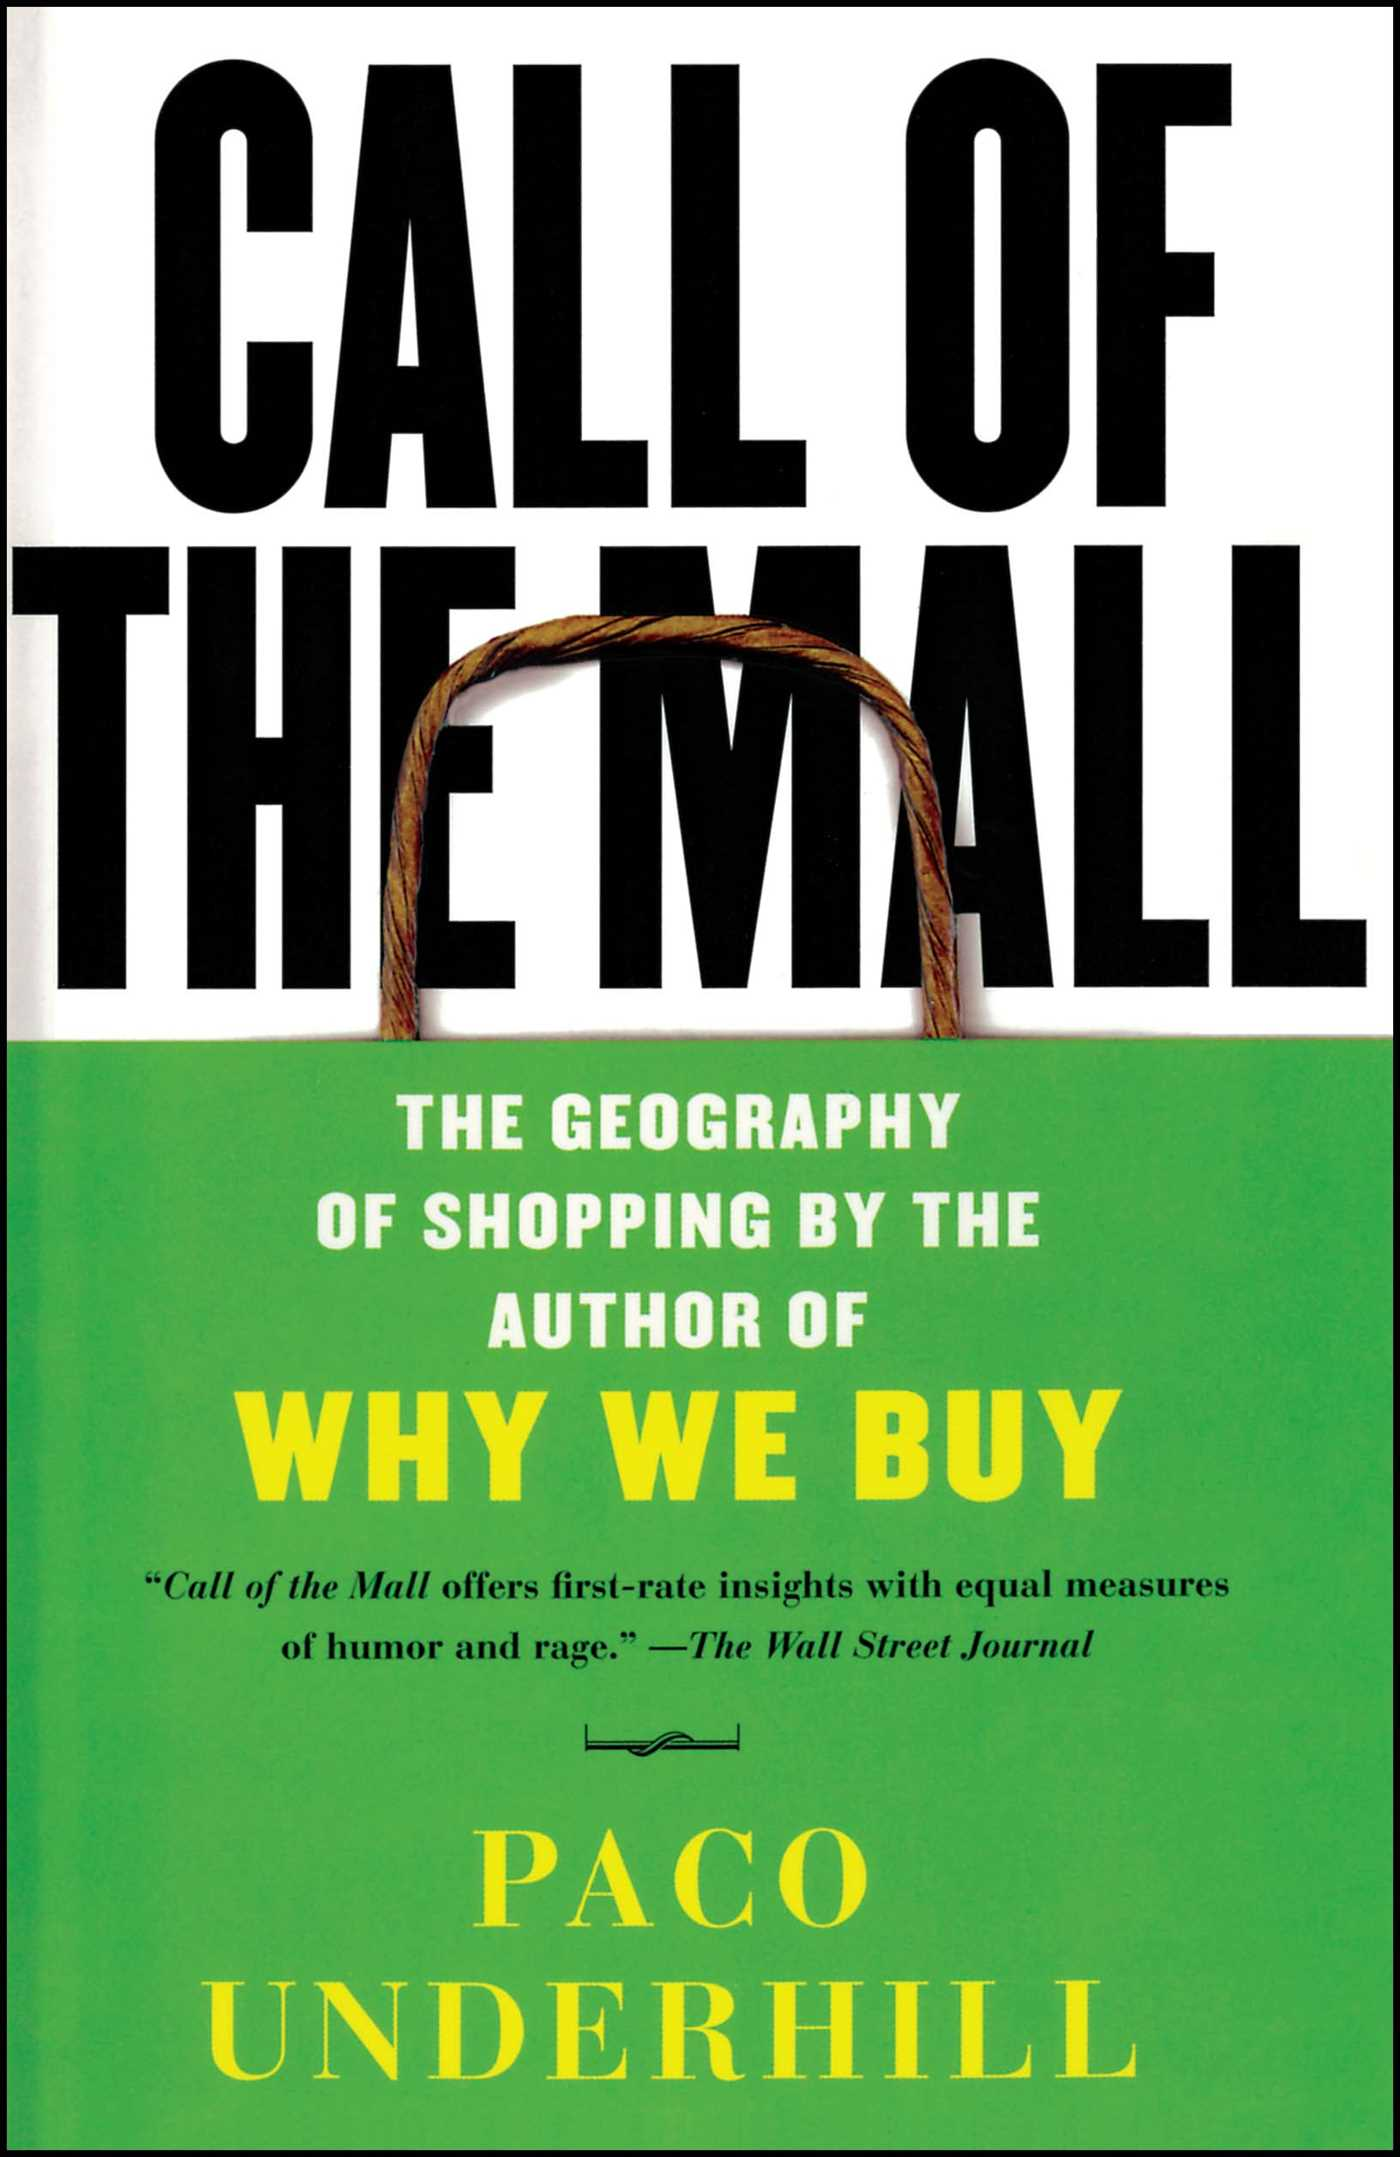 WHY WE BUY PACO UNDERHILL PDF DOWNLOAD